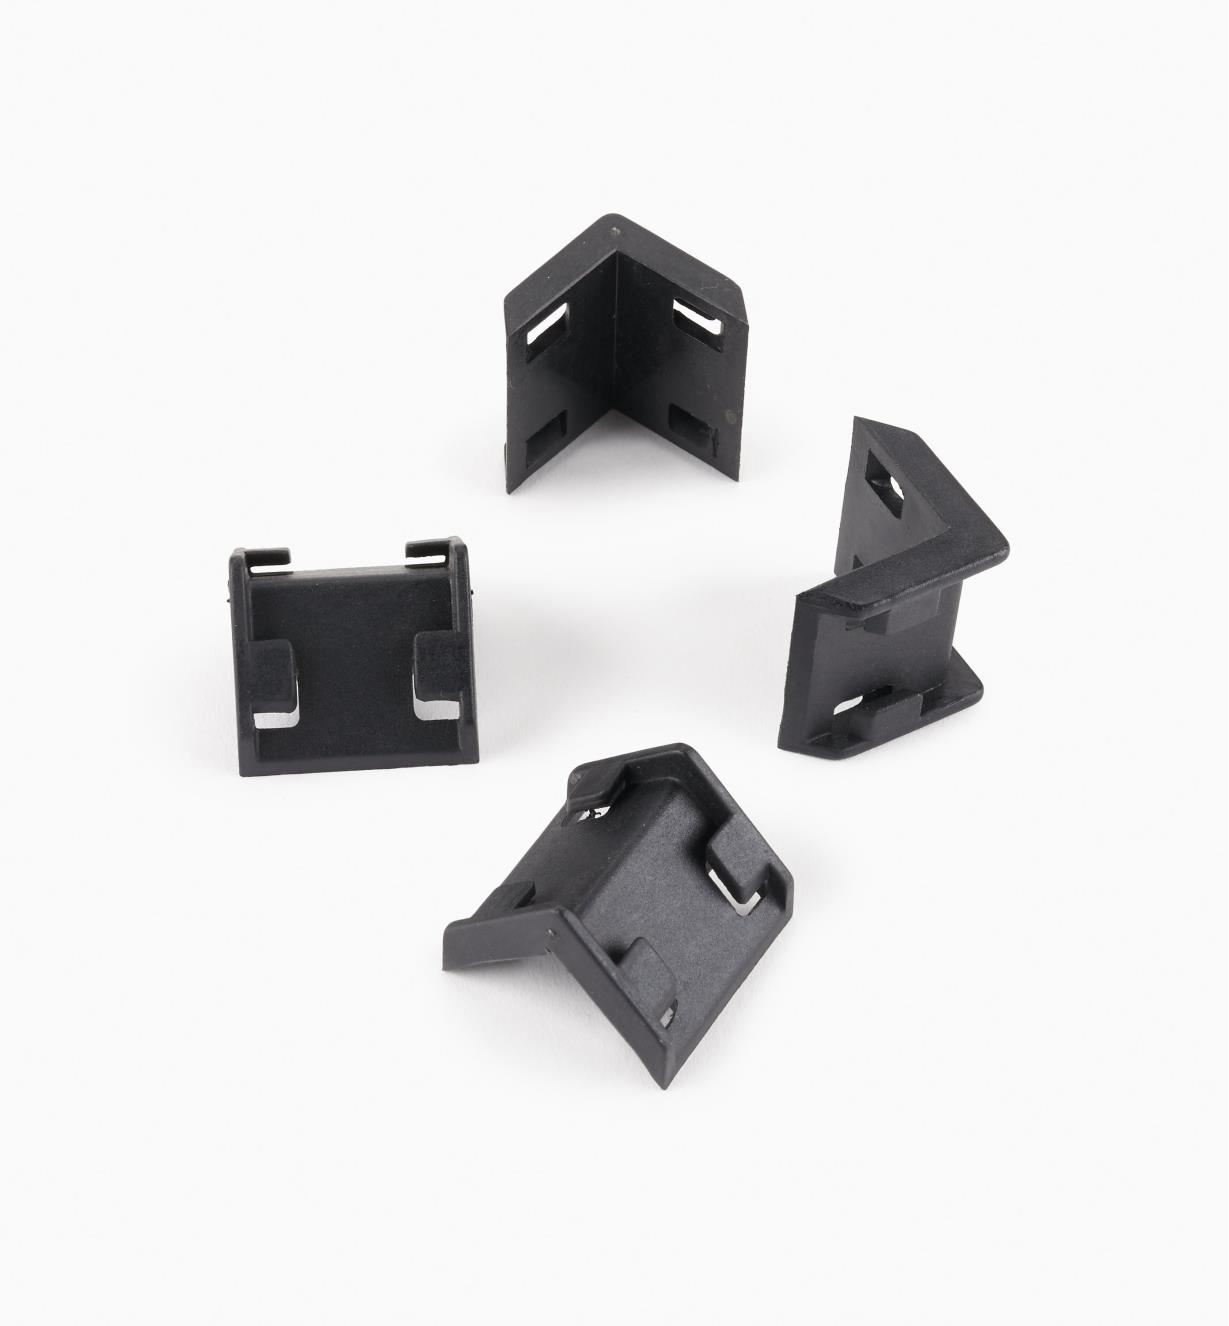 17F1005 - Set of 4 LV Nylon Corners only